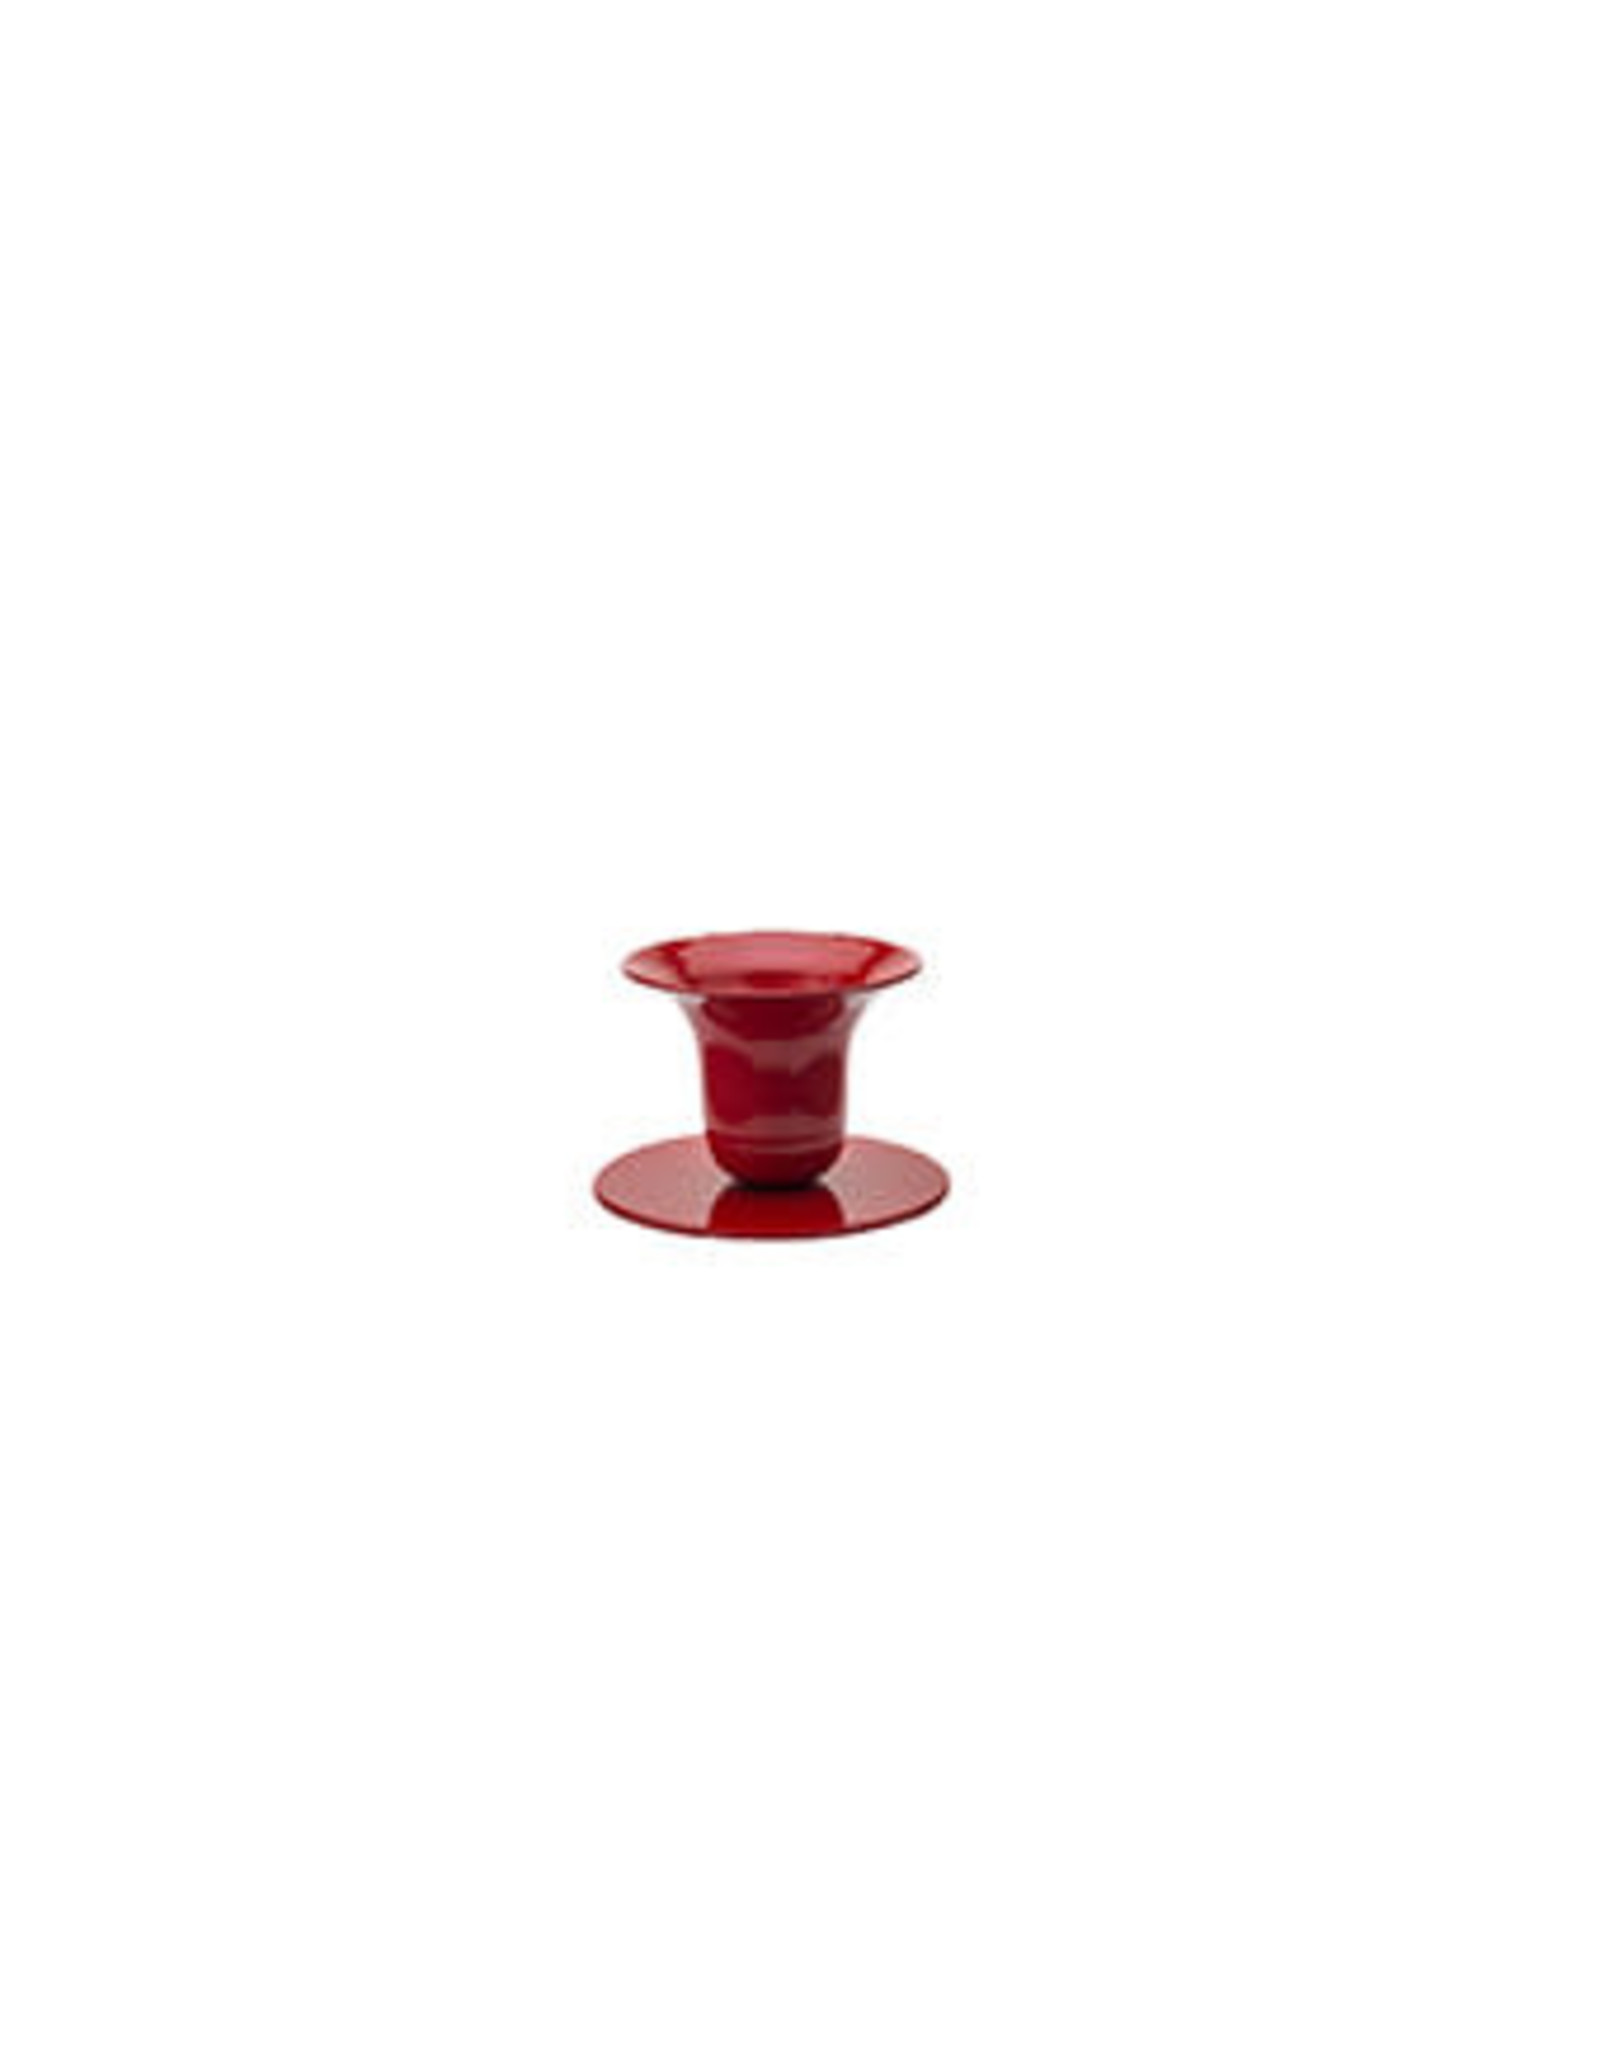 Kunst industrien The Bell Candlestick, Red  | H 5cm dia 2,3cm